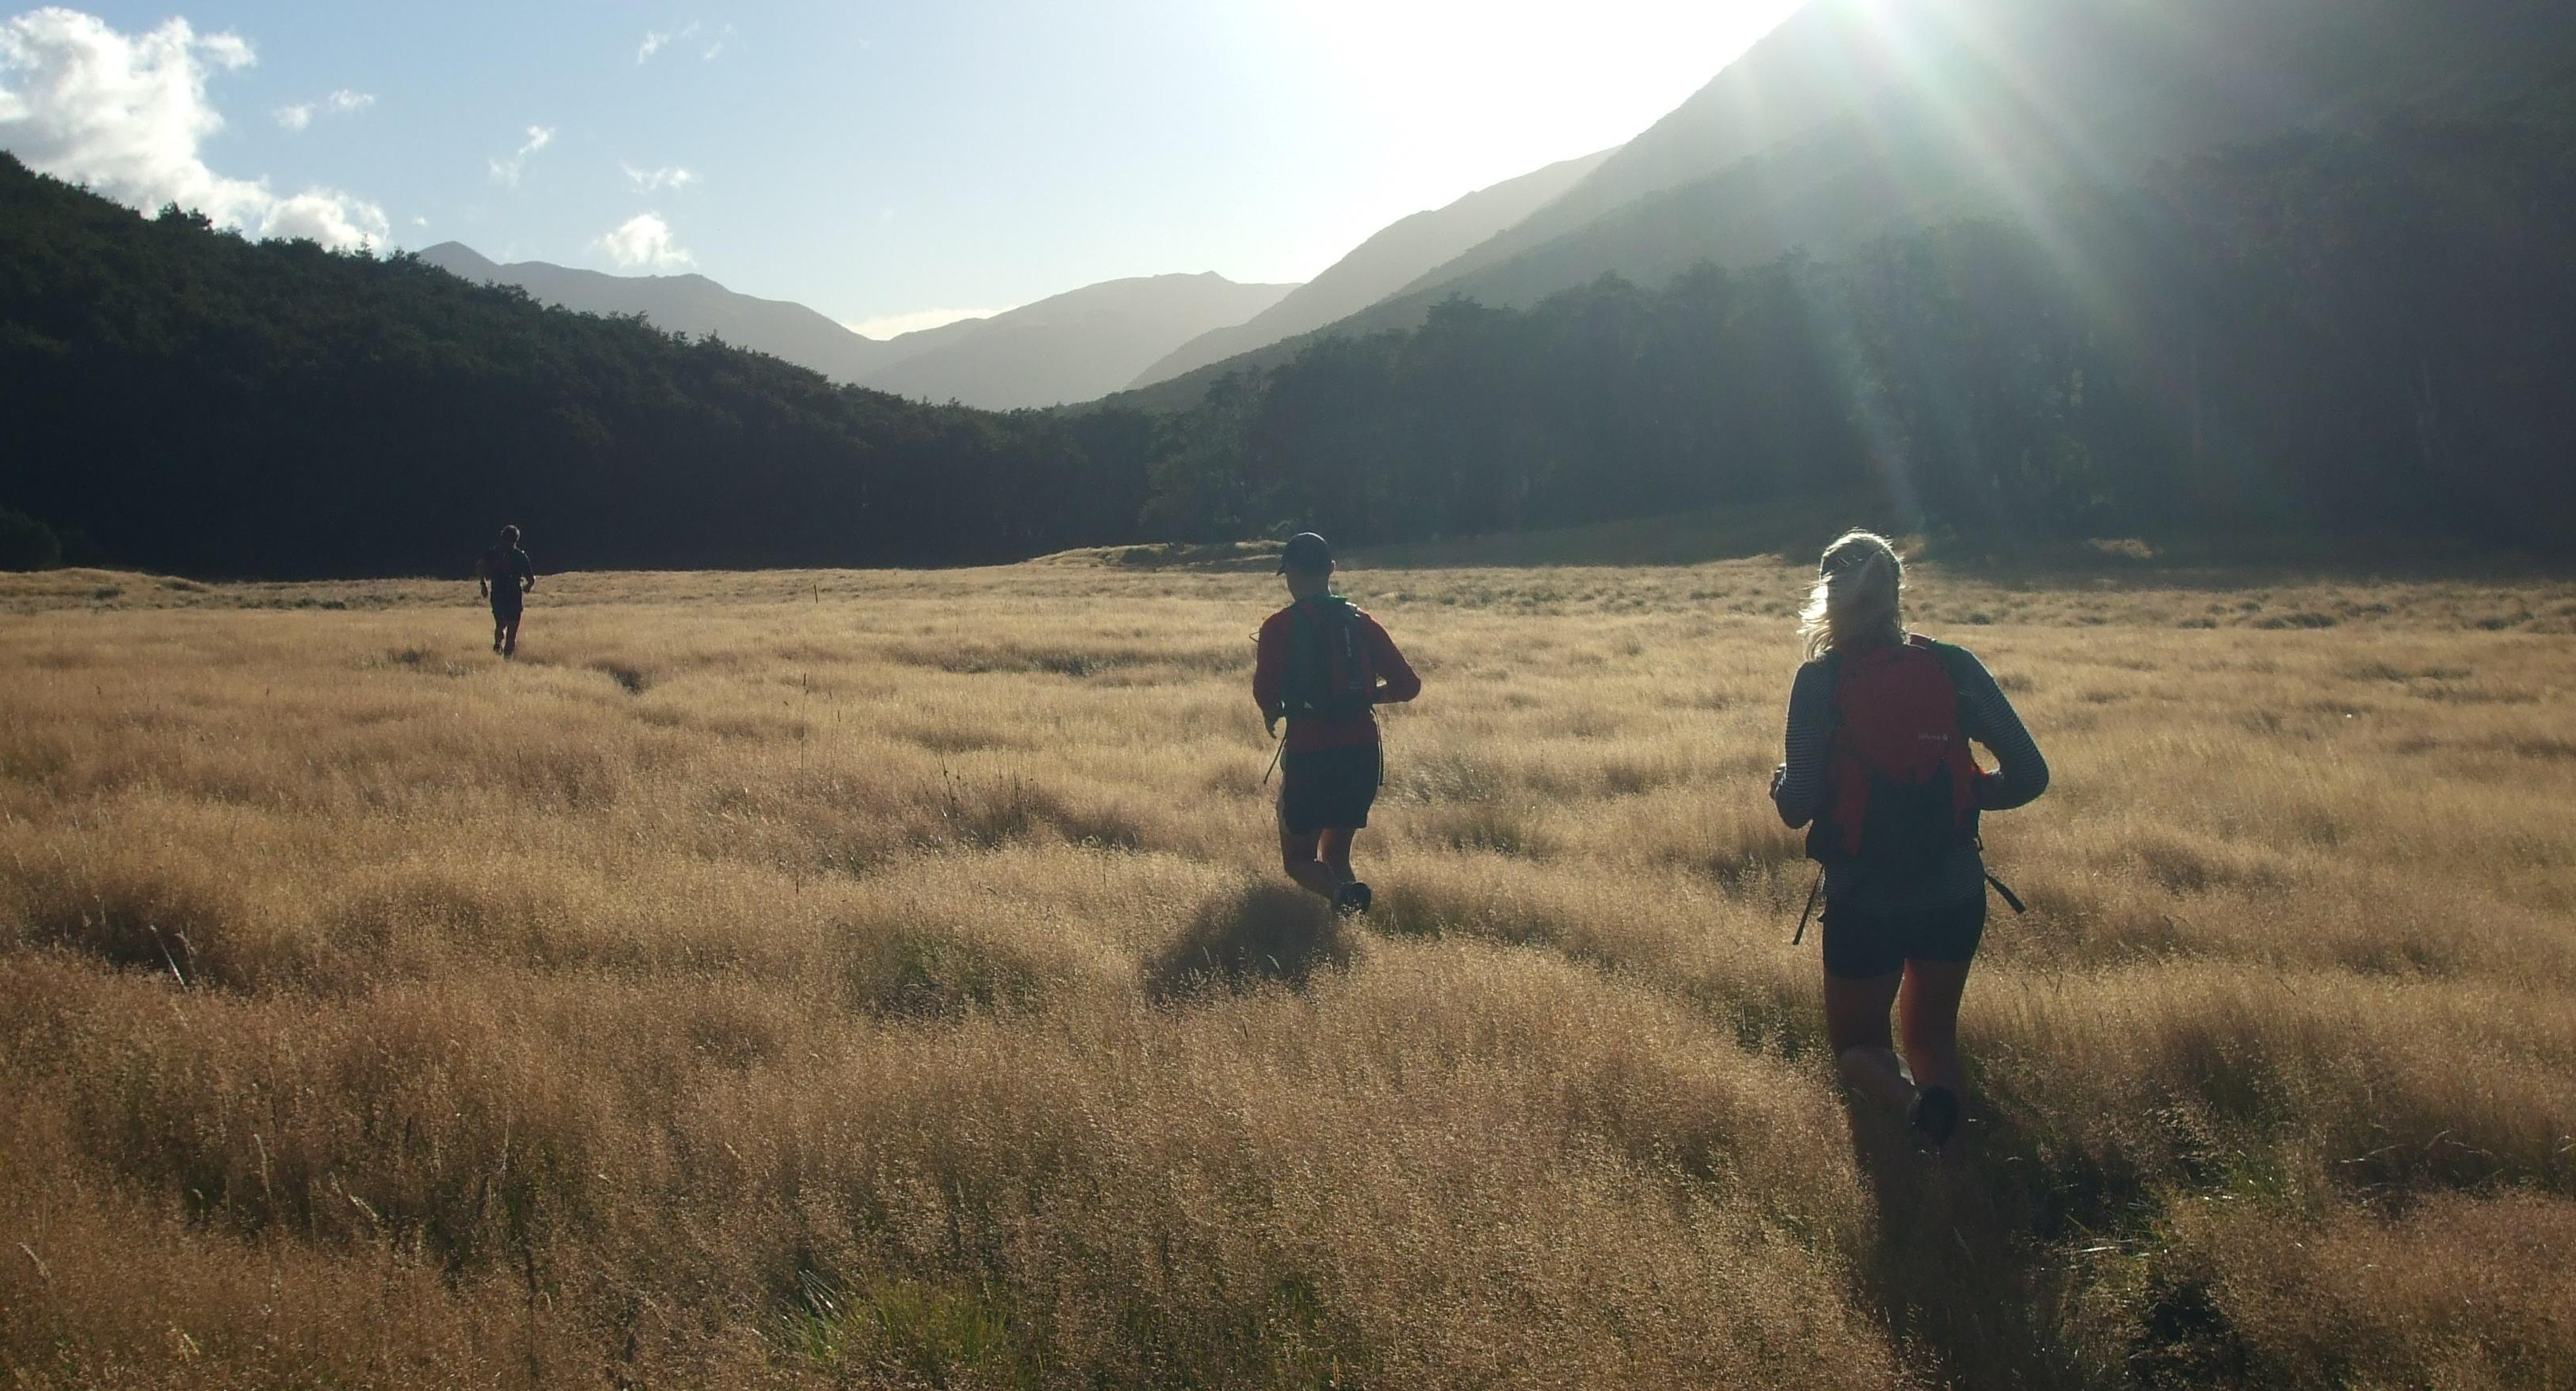 St. James, NZ Ultramarathon by Leslie Mochan